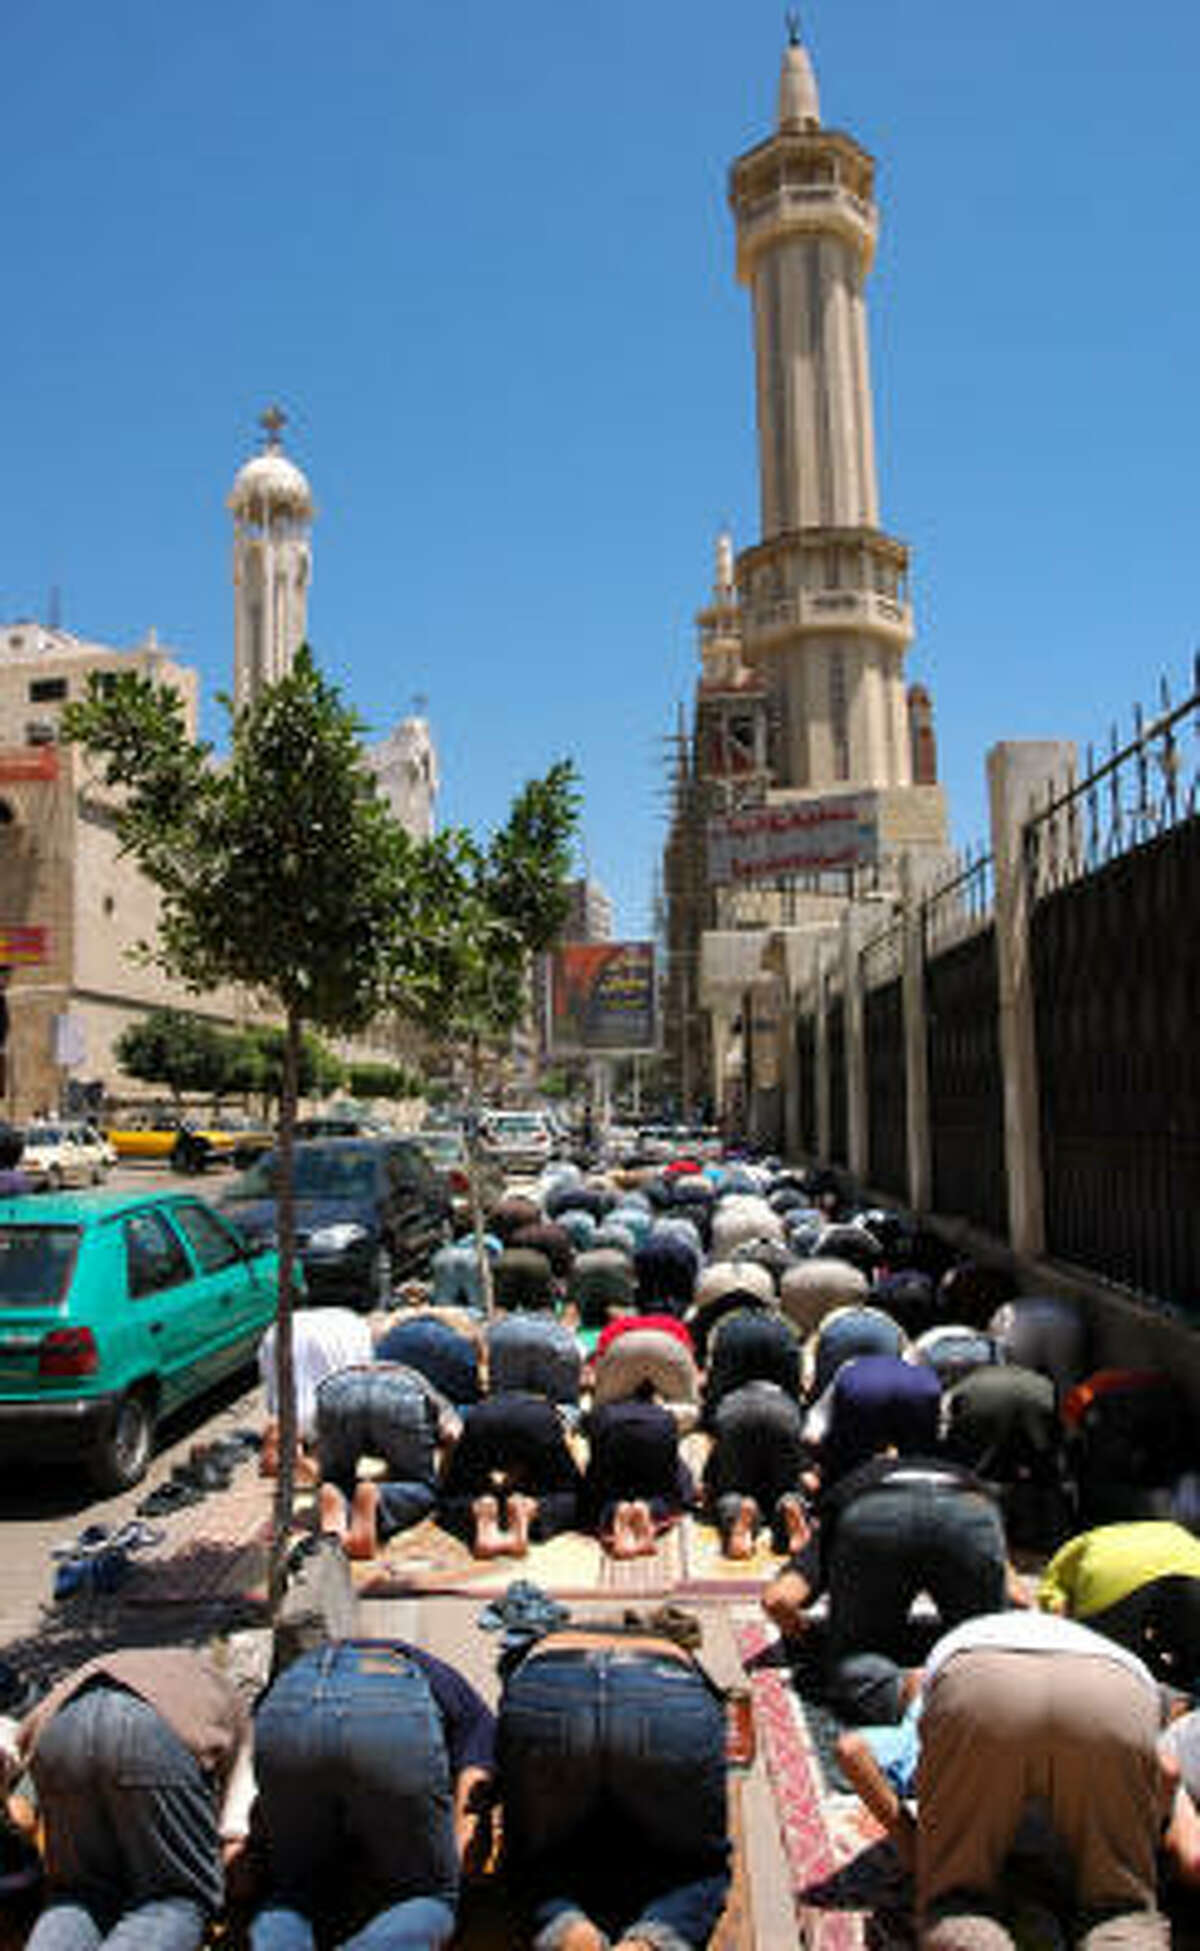 Muslims pray outside a Mosque that is next to a church where a Muslim was accused of killing Christians.